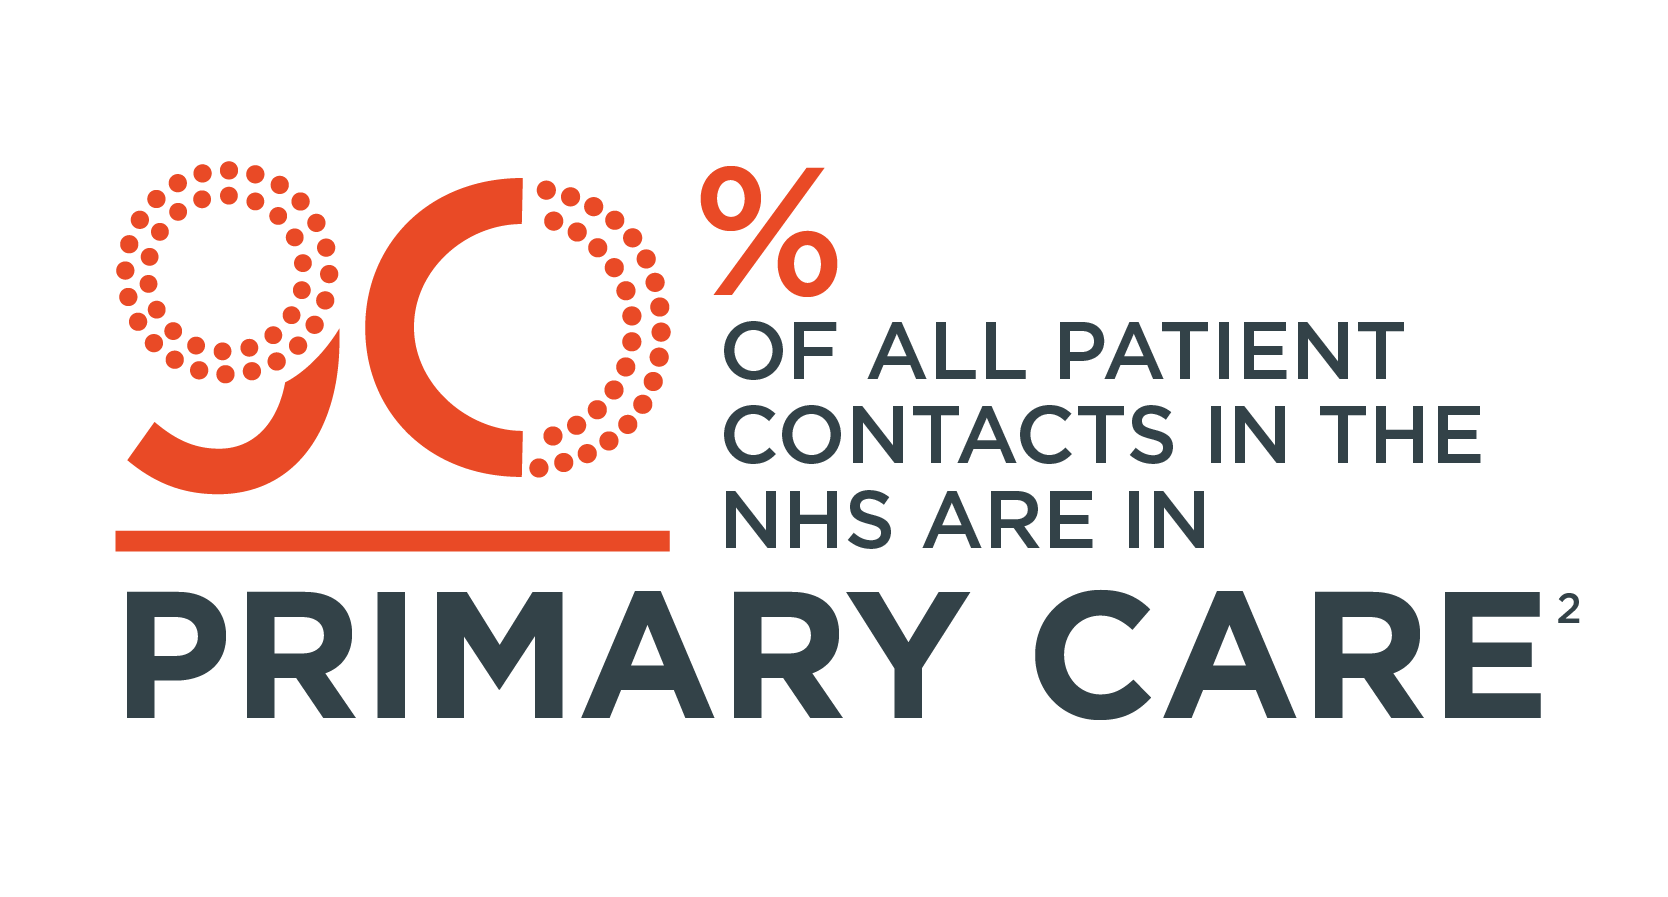 90% of all patient contacts in the NHS are in primary care